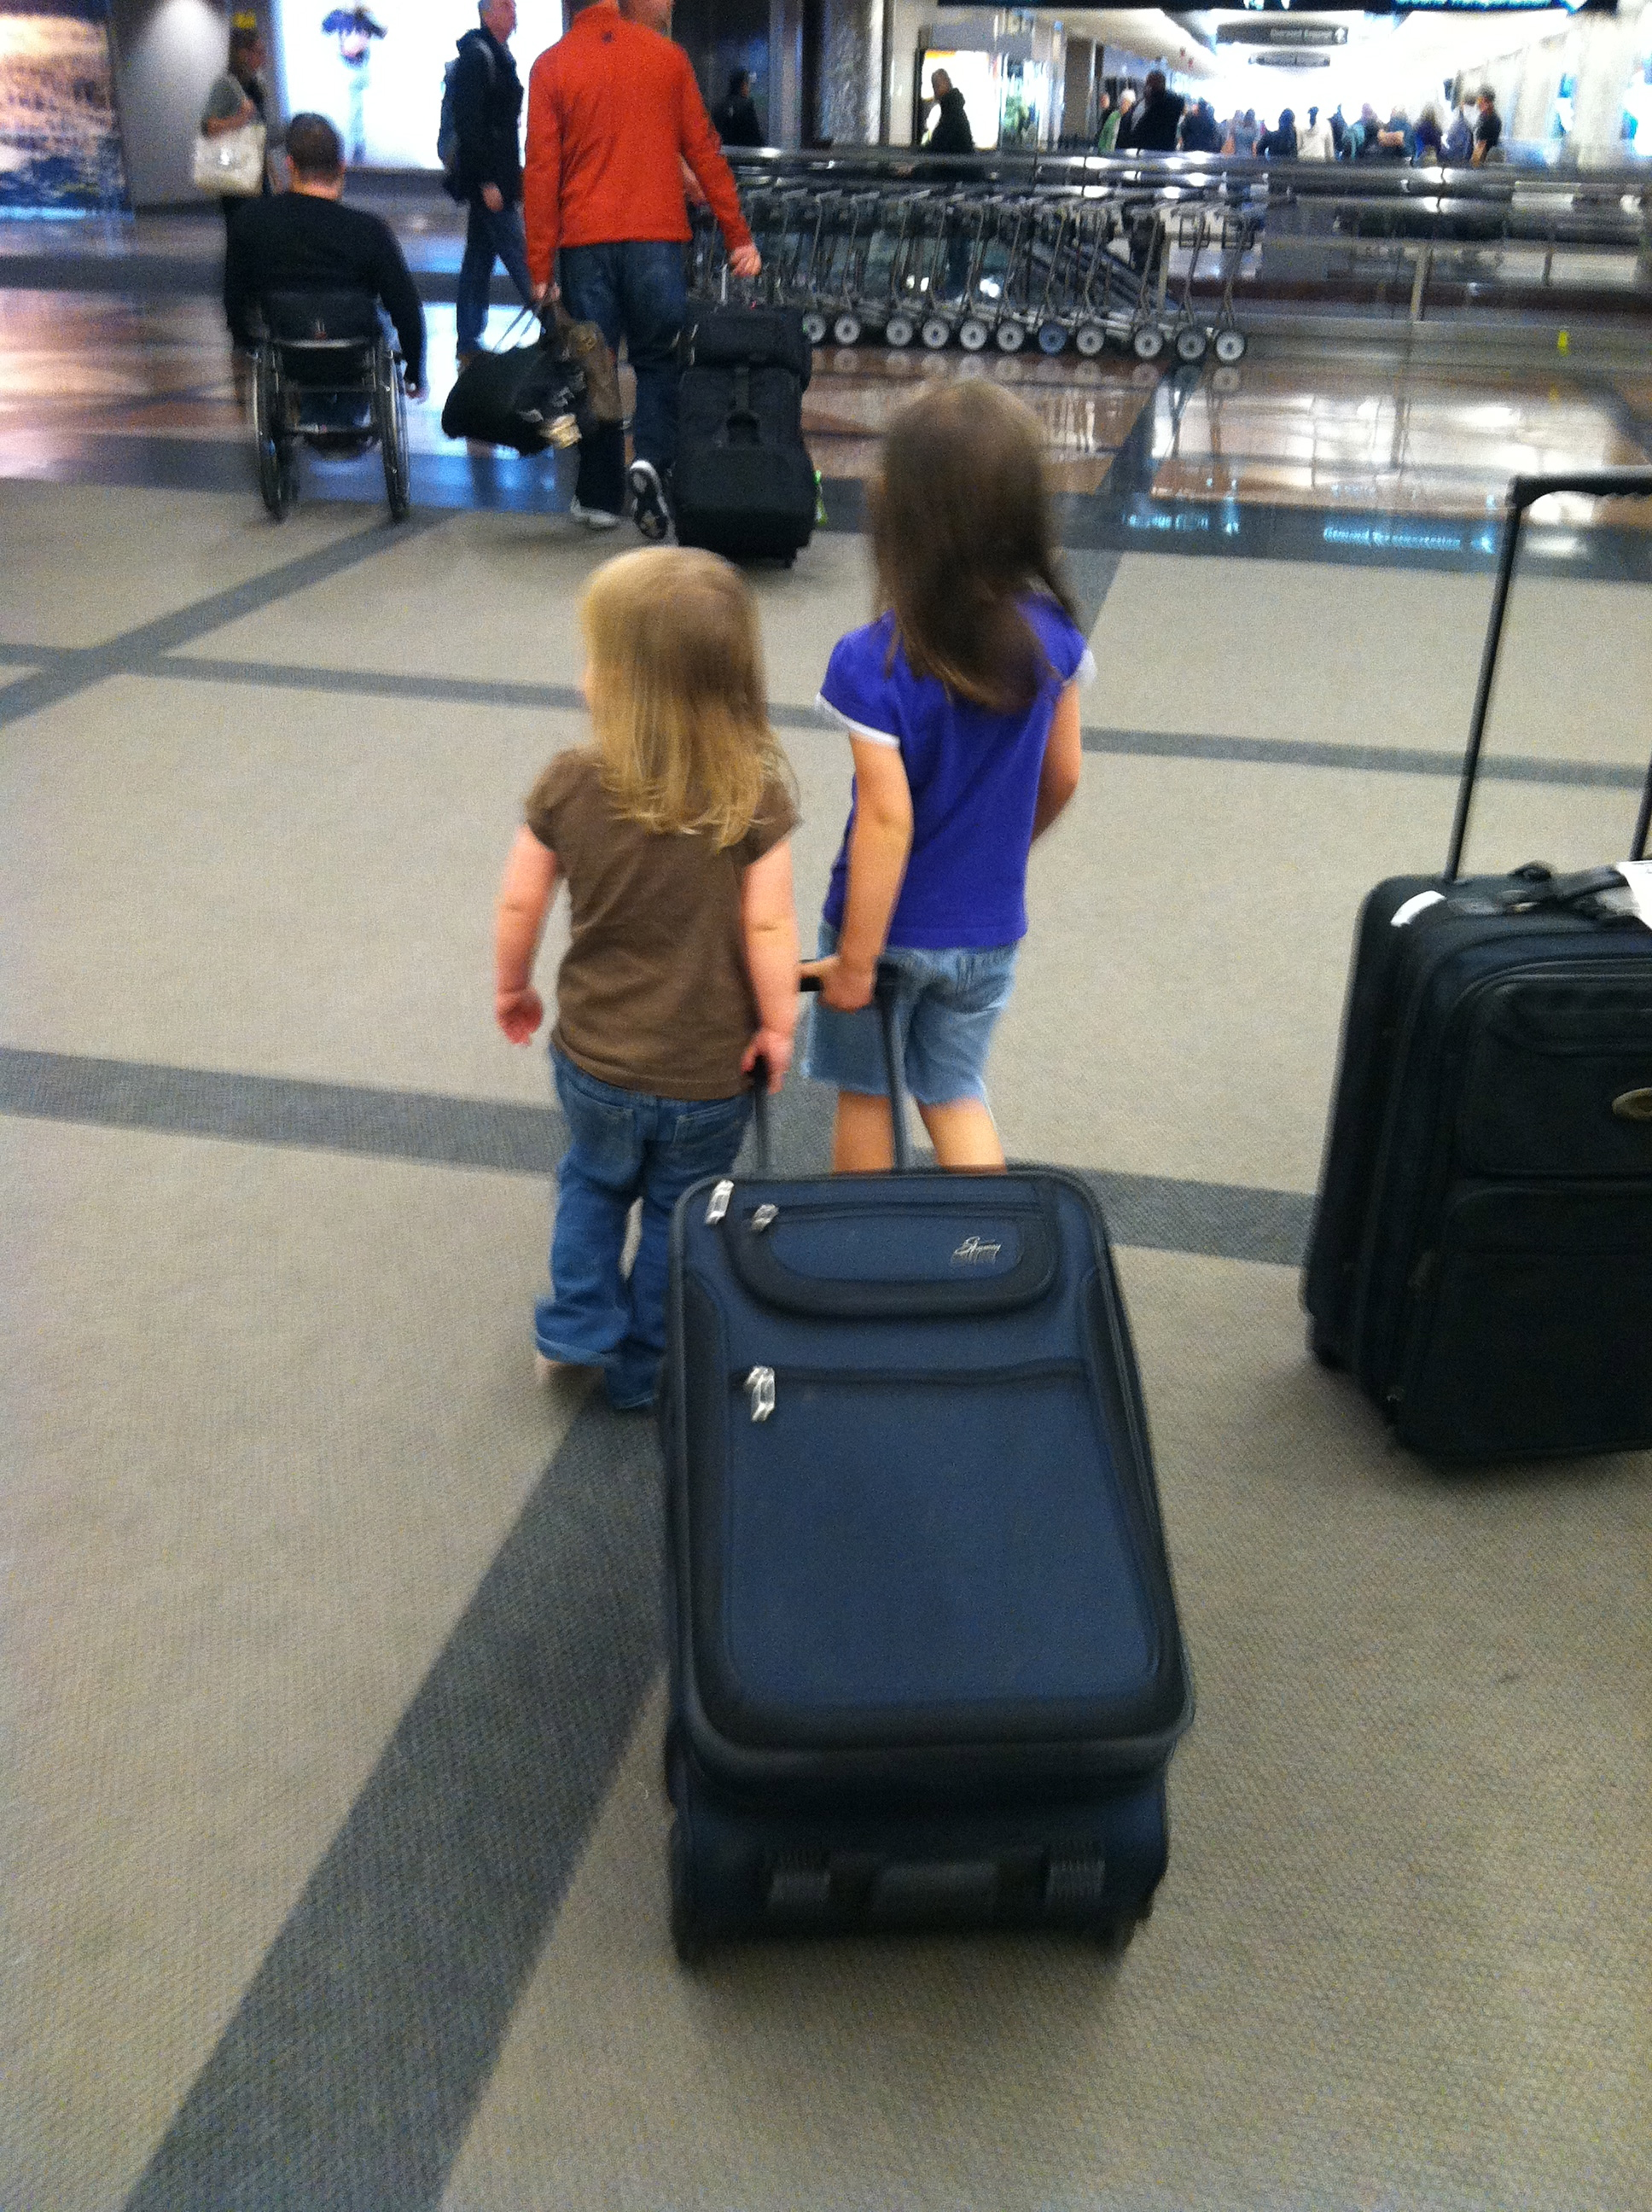 Kids helping at the airport